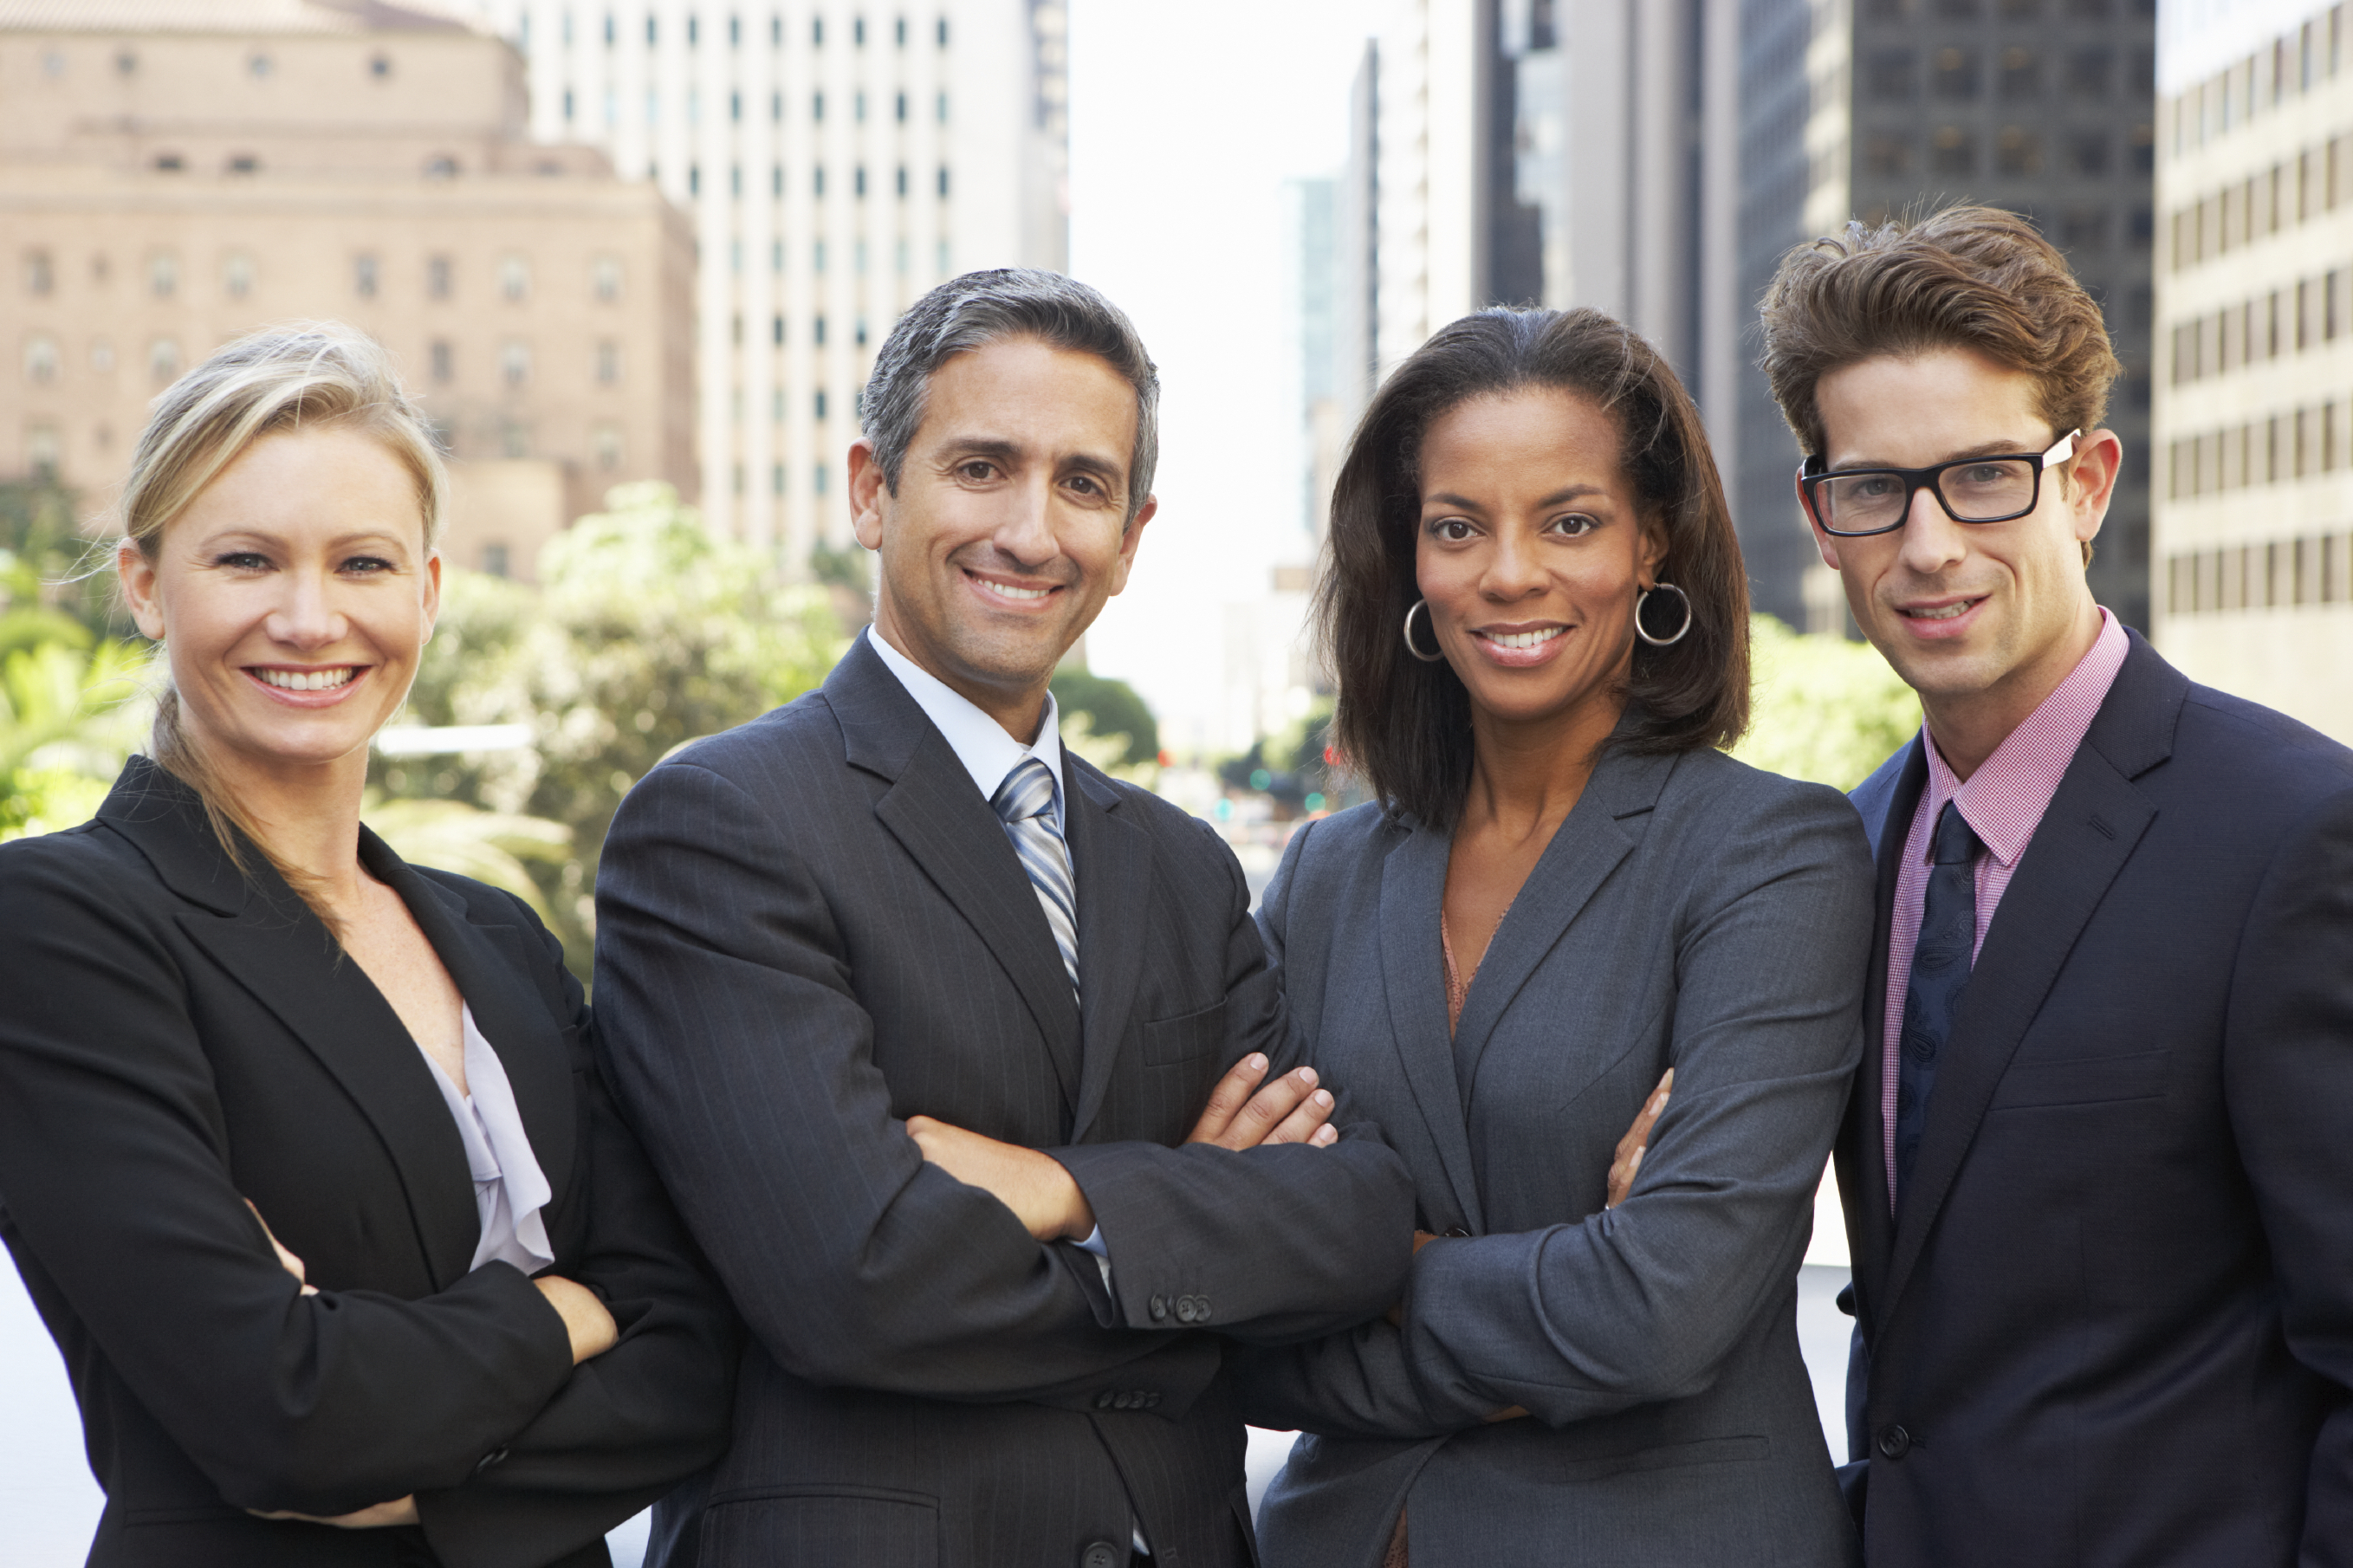 Compromise Agreements Employment Lawyers In London